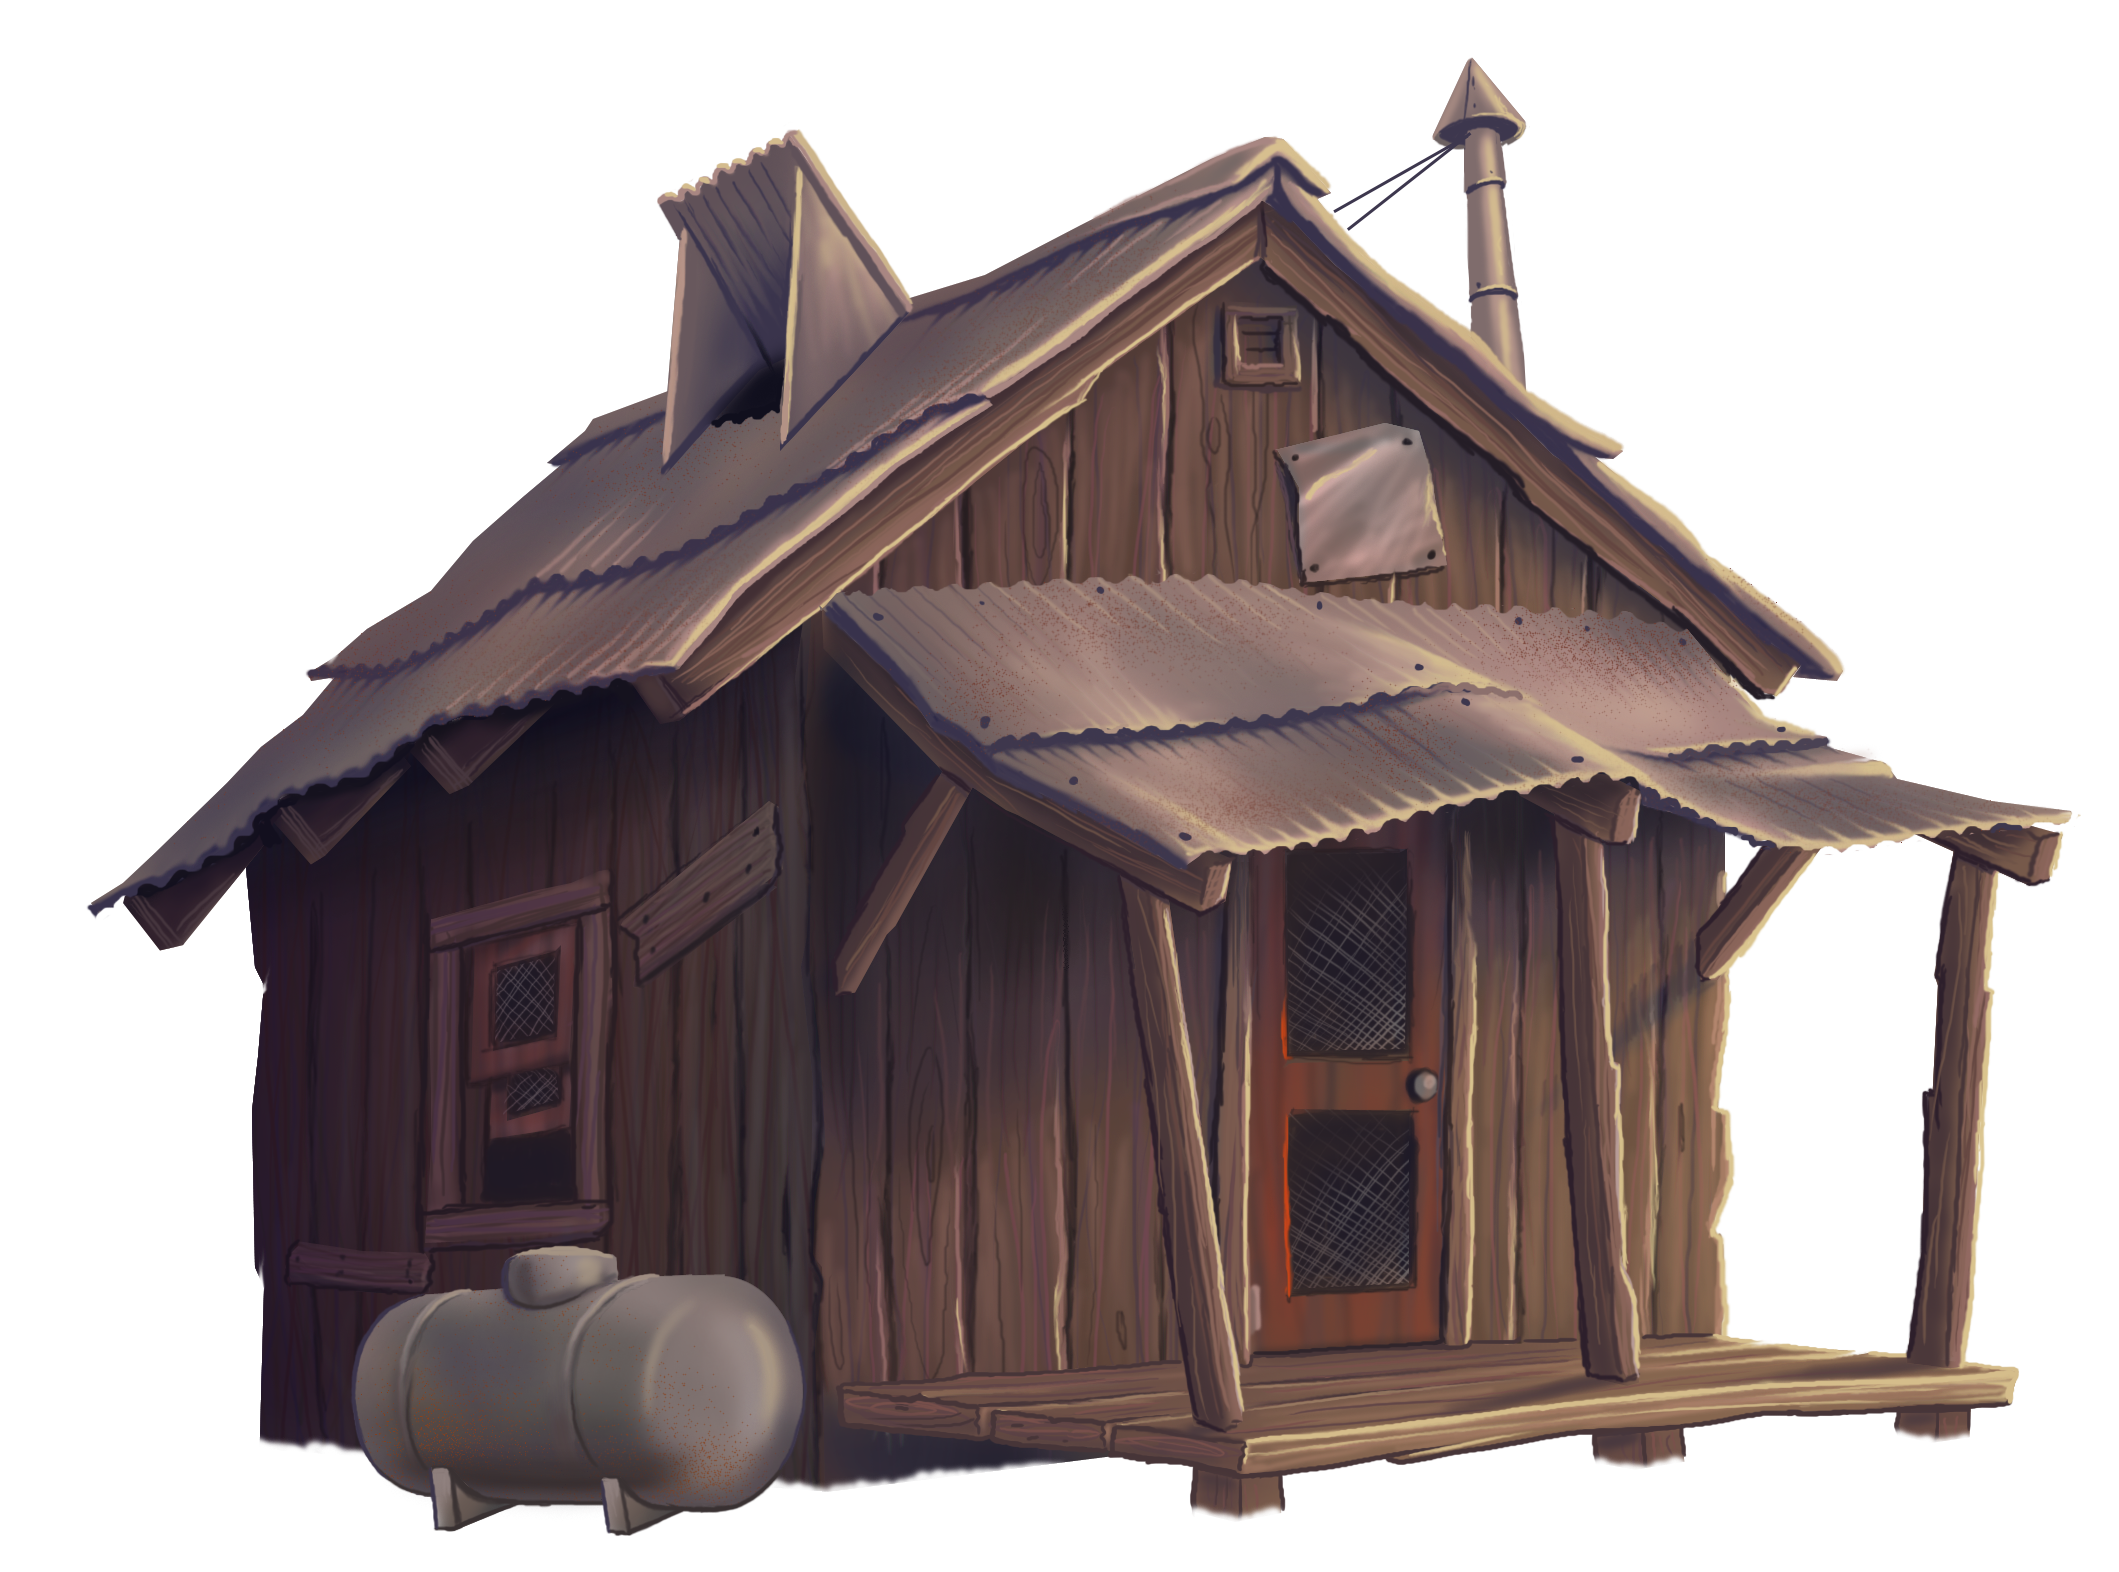 Shack clipart brown house Shack Clip Shack Shack Download